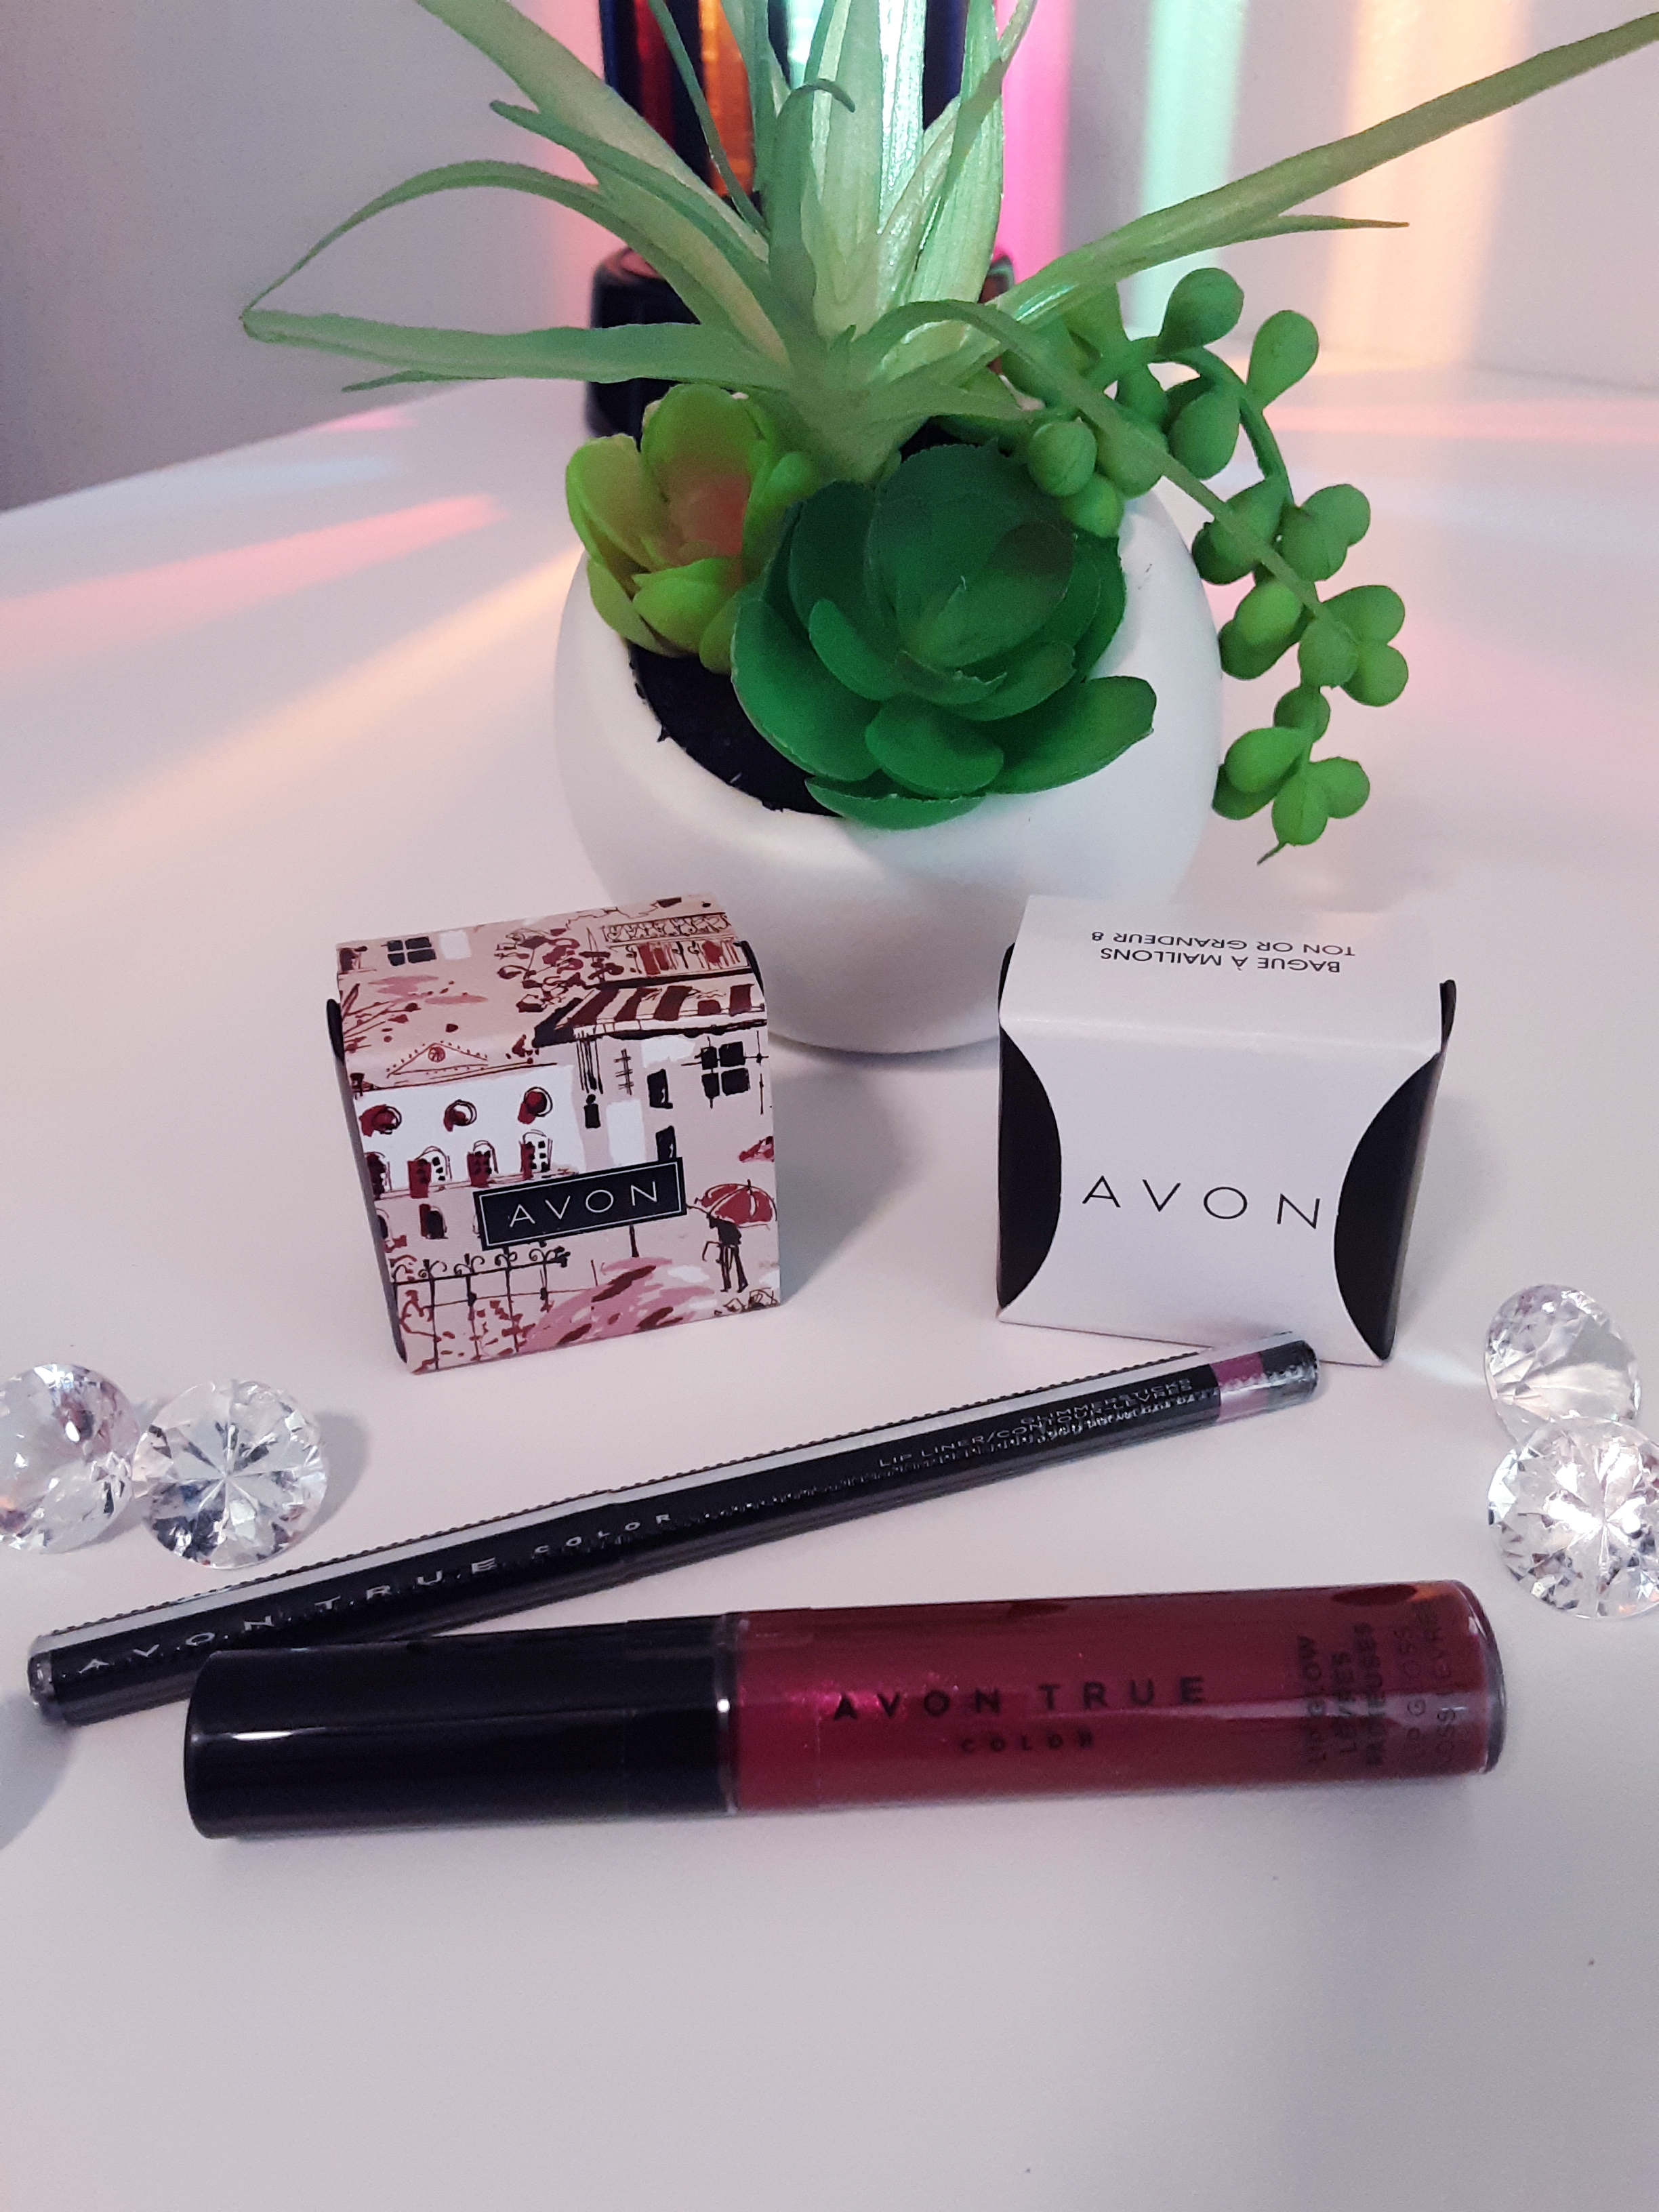 Avon Lip Glow Lip Gloss and Glimmersticks Lip Liner